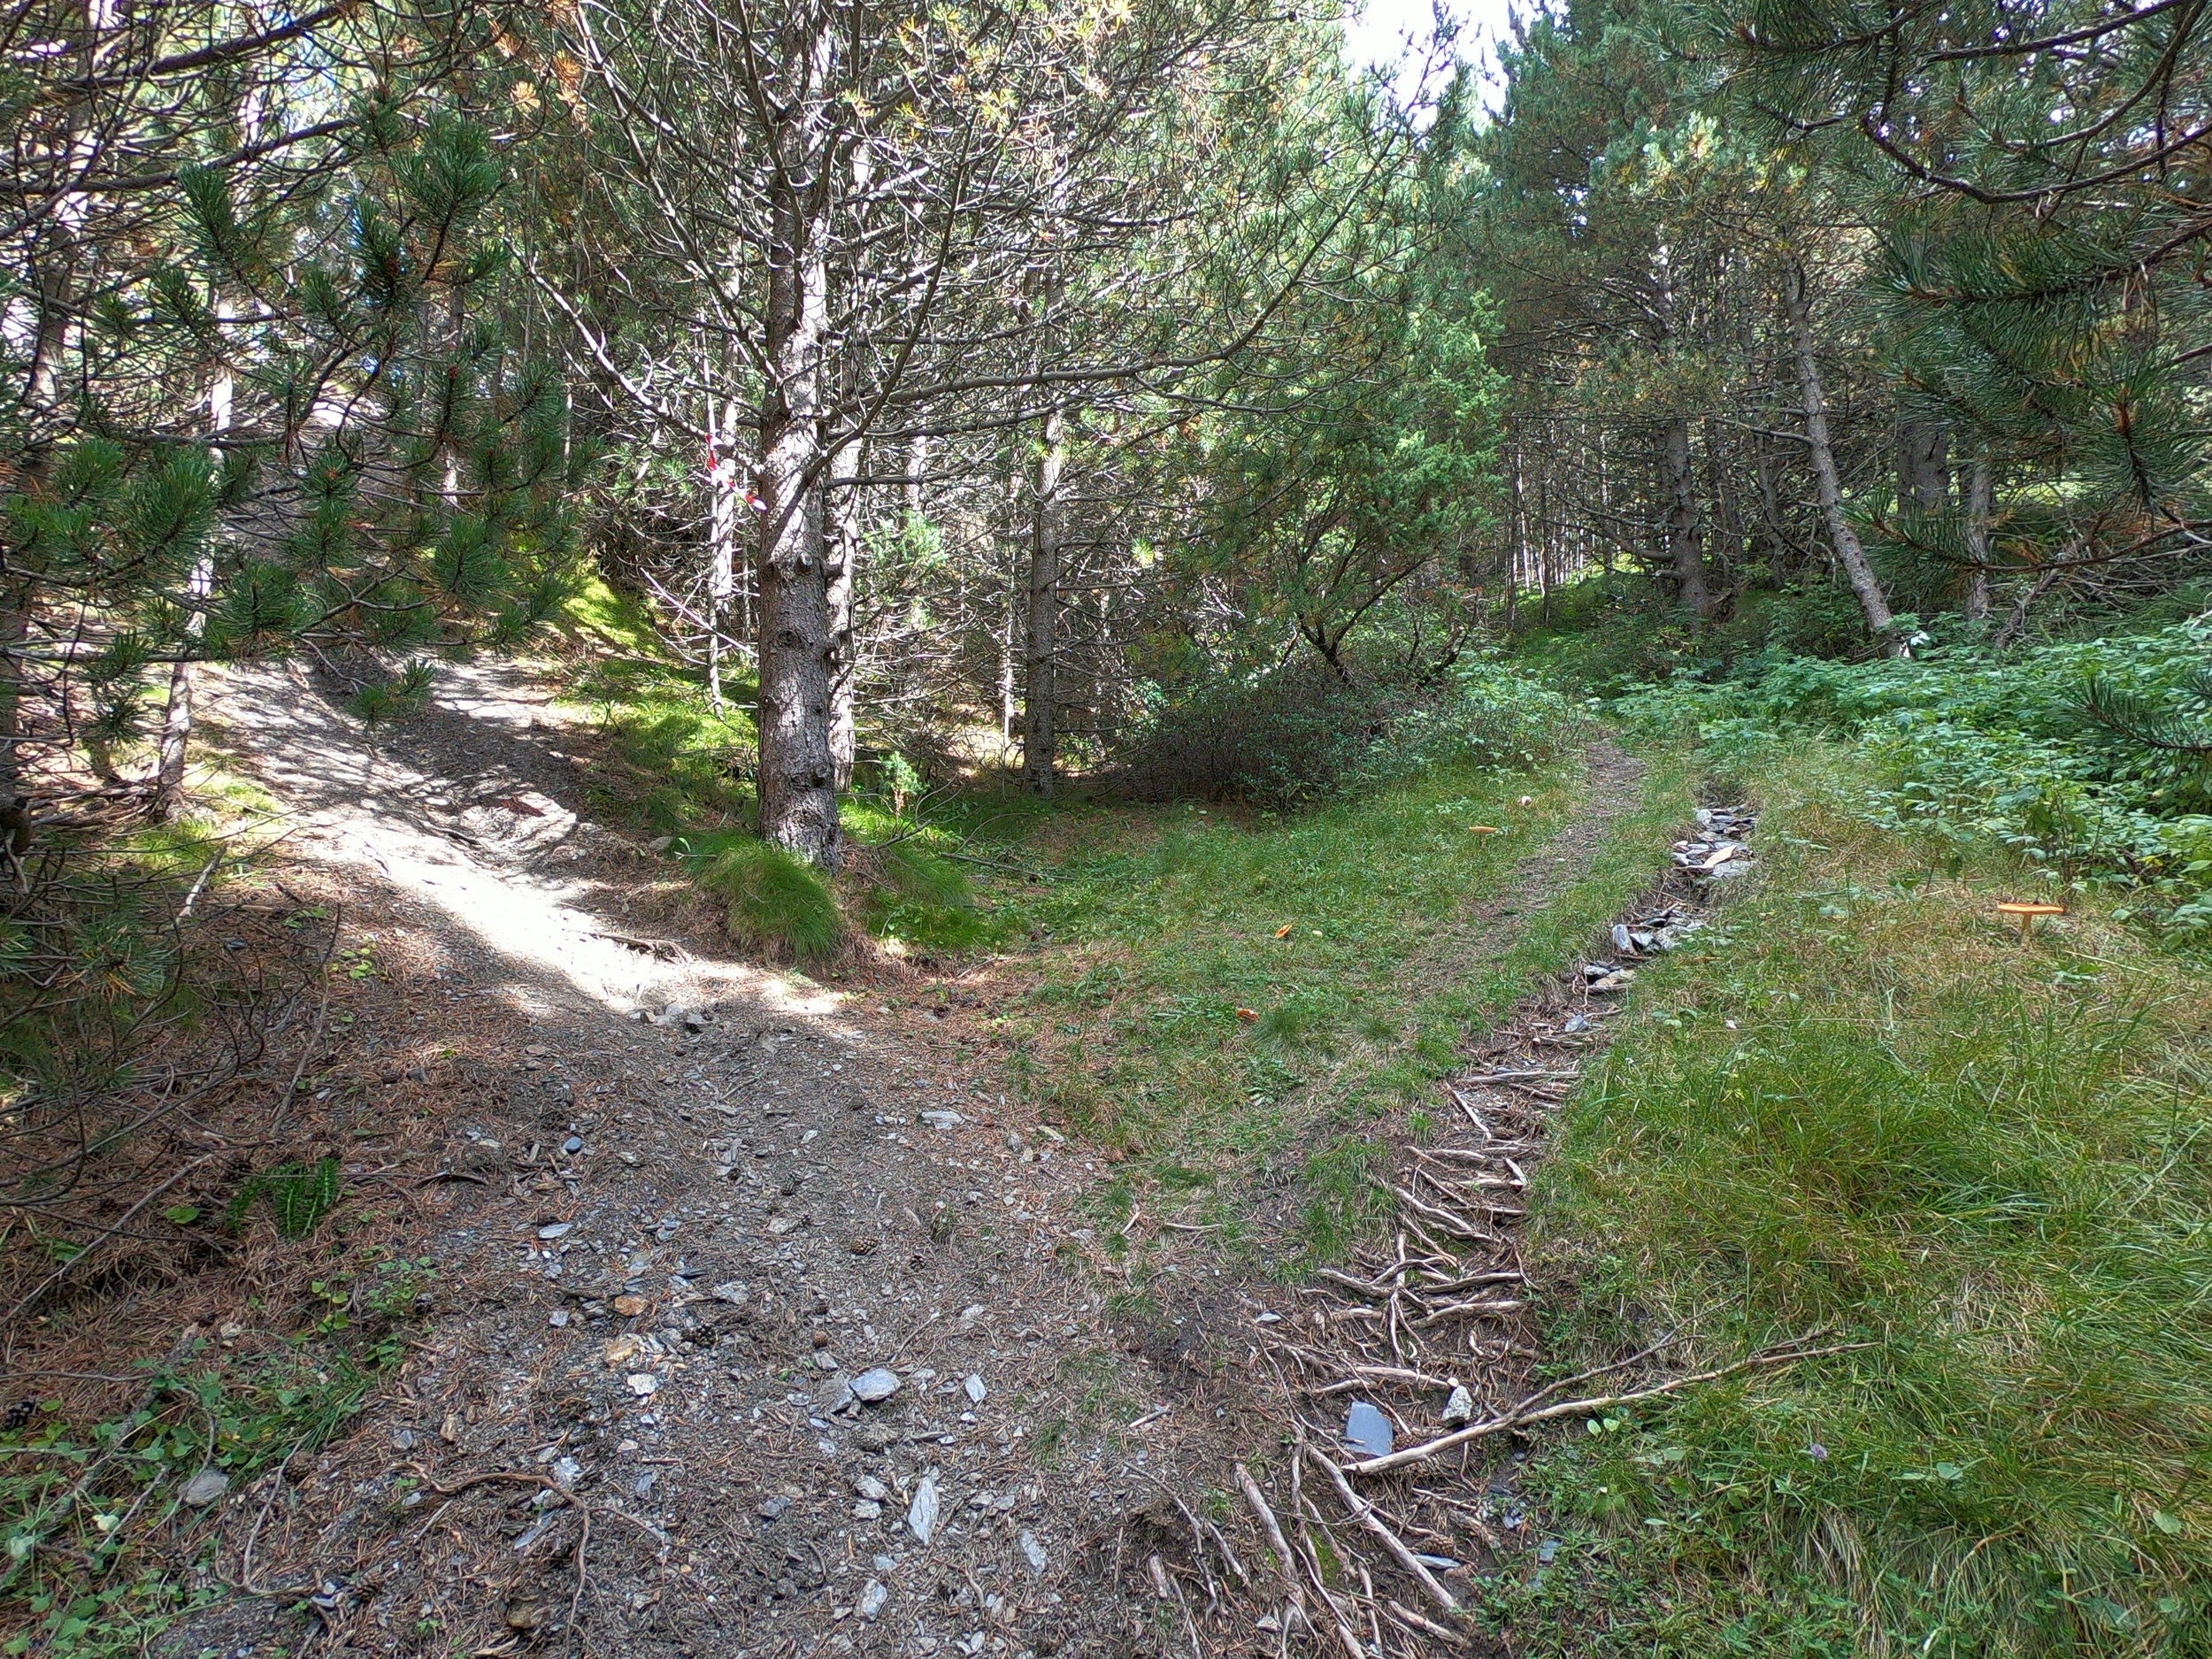 Take the left fork and go up a steep single track.